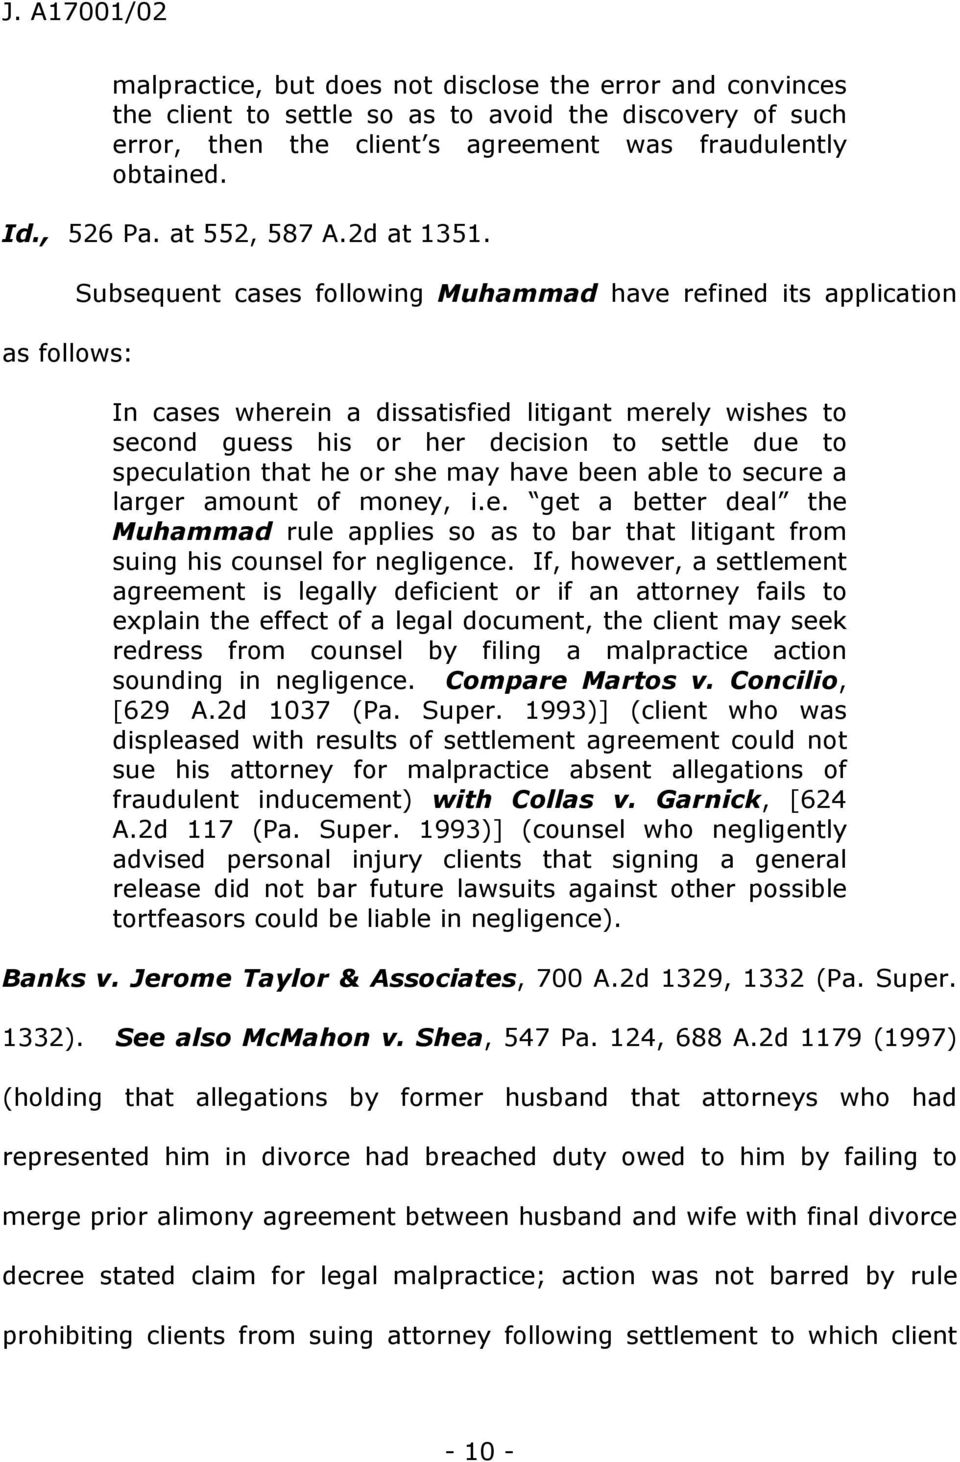 as follows: Subsequent cases following Muhammad have refined its application In cases wherein a dissatisfied litigant merely wishes to second guess his or her decision to settle due to speculation